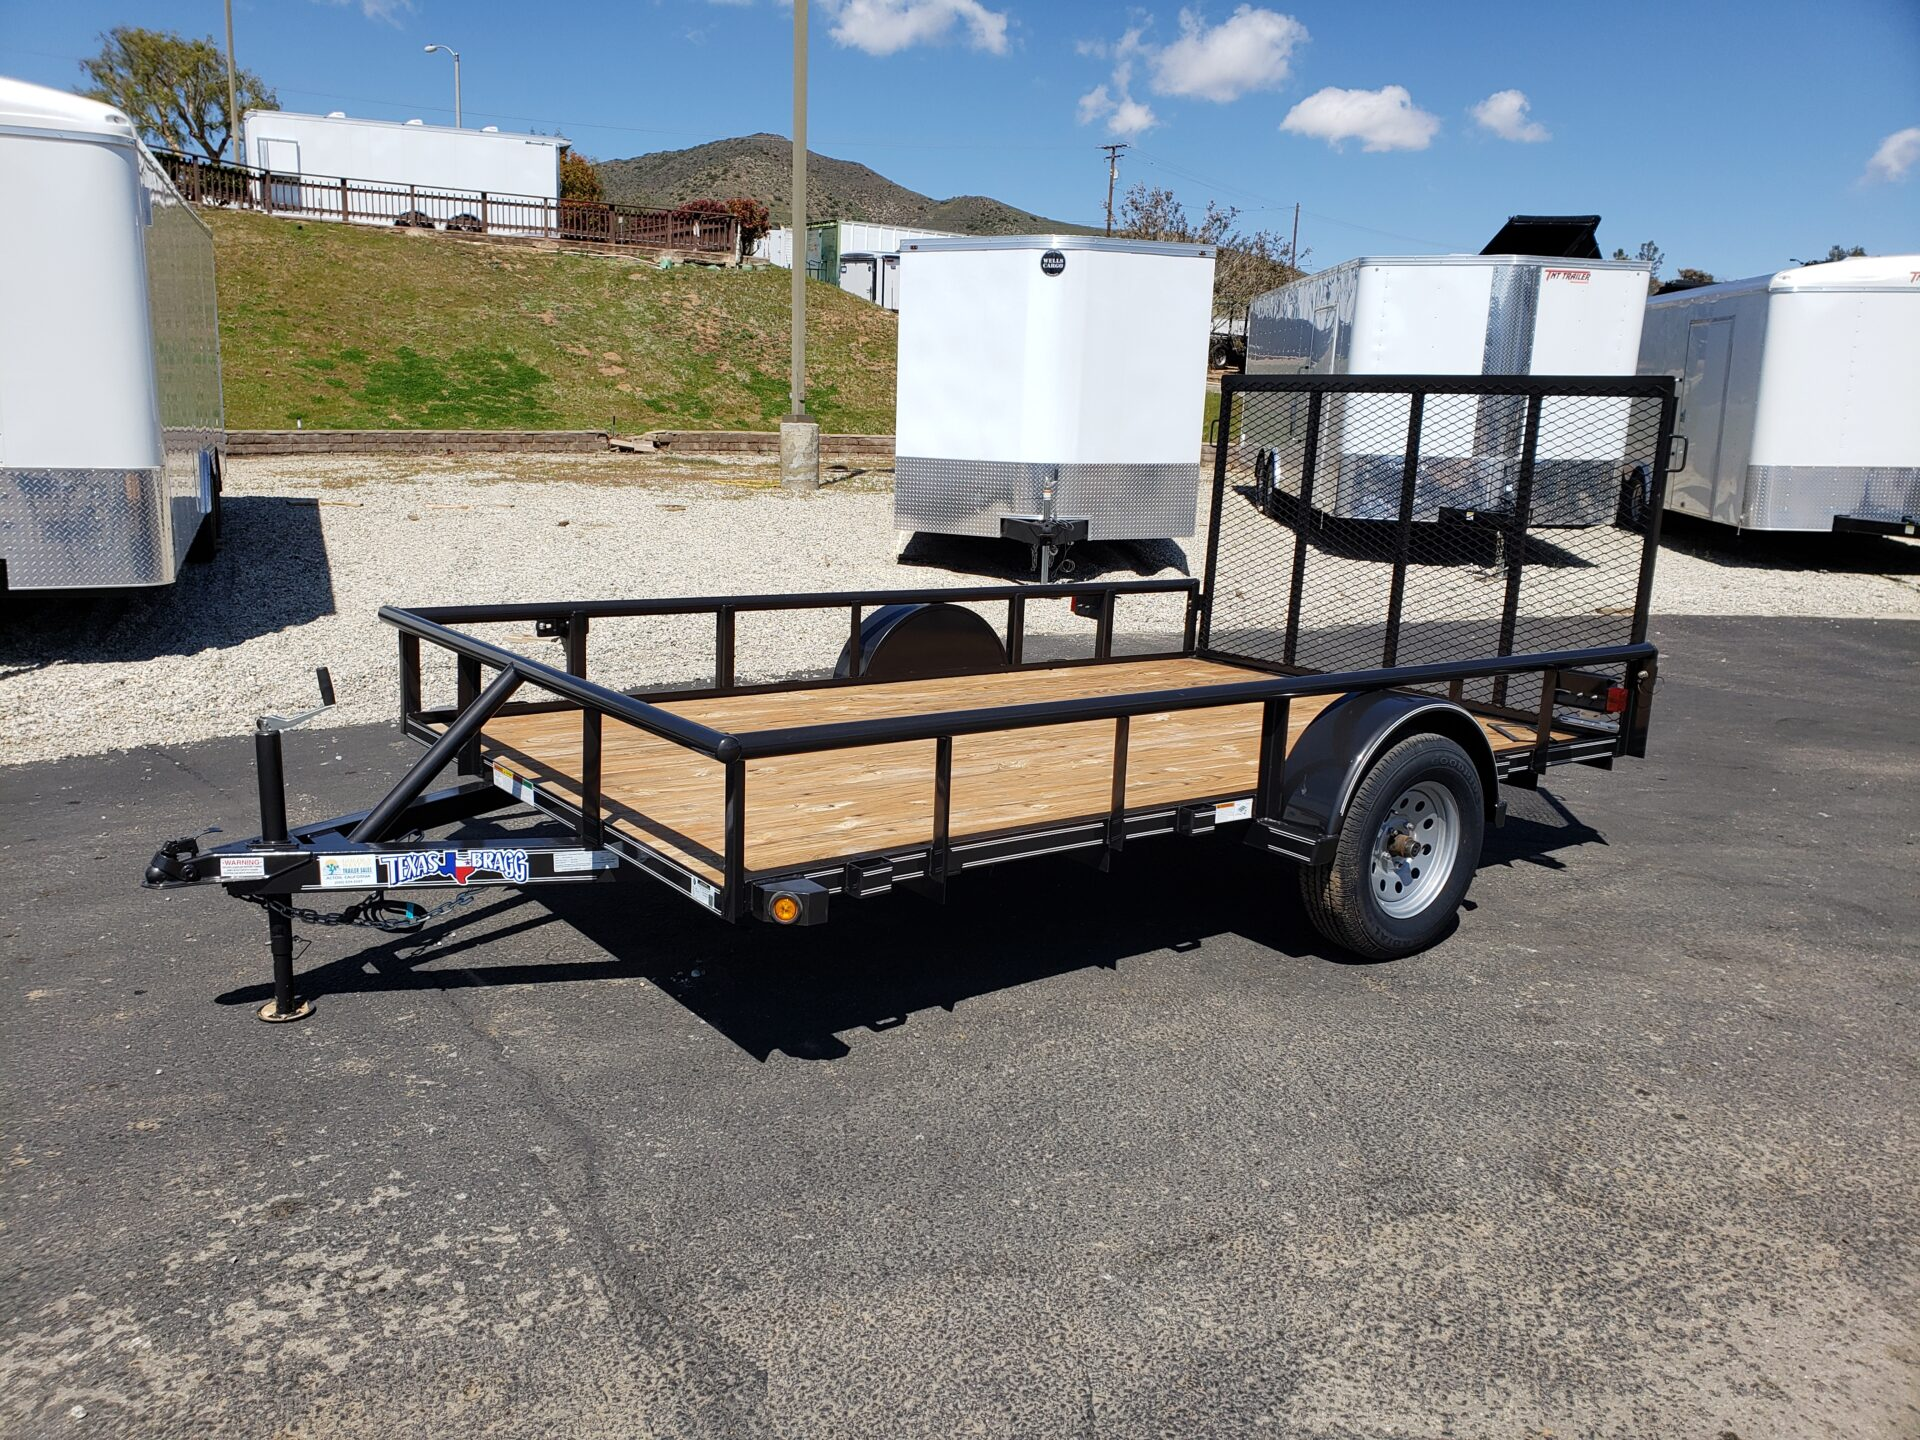 Texas Bragg 7x12 Ramp - Driver side front 3/4 view